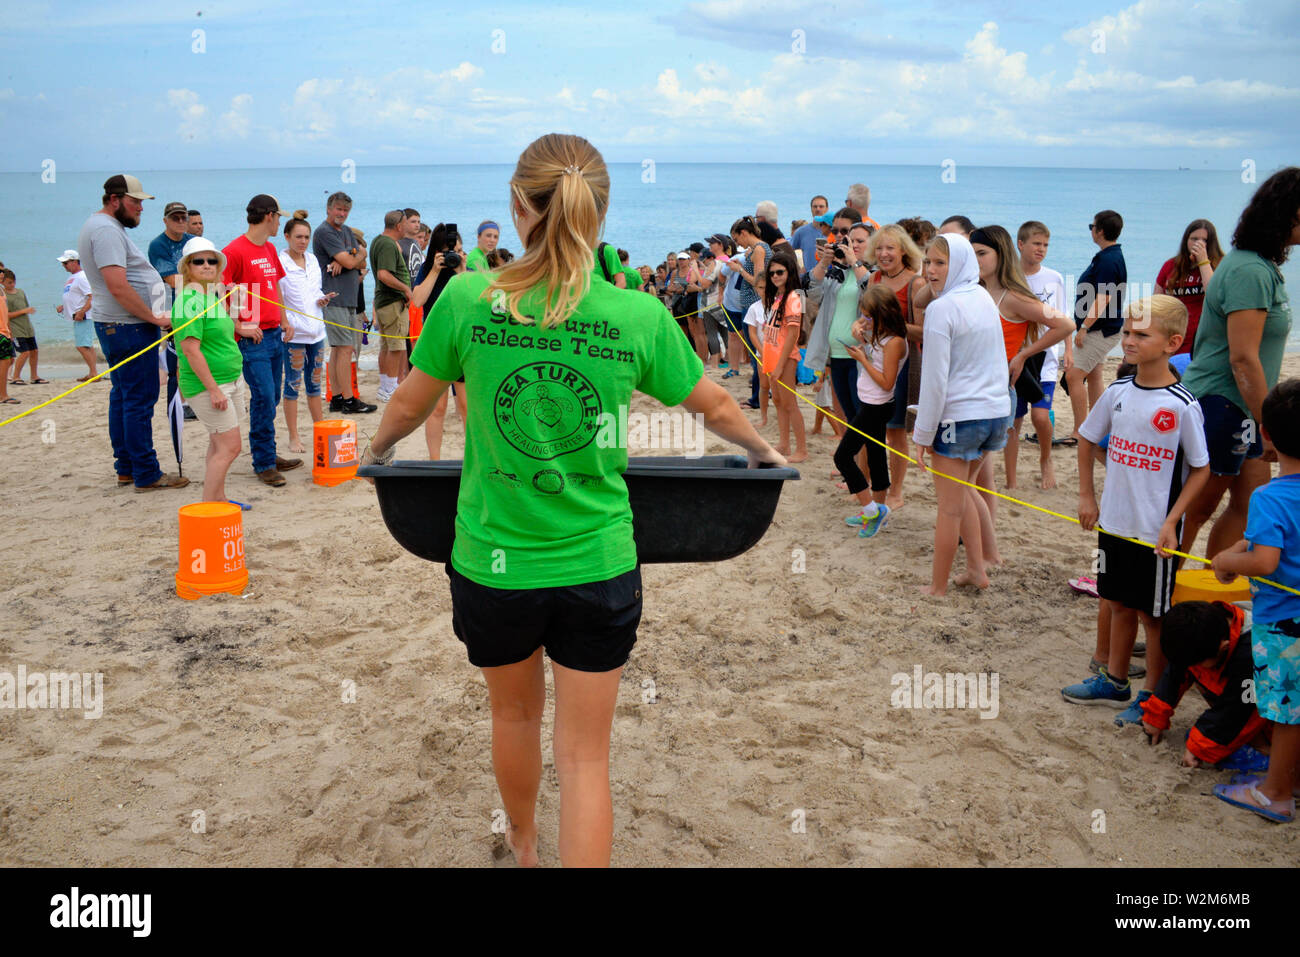 Melbourne Beach, Florida, USA. July 9, 2019.  Following a stay at Brevard Zoo's Sea Turtle Healing Center, juvenile green sea turtle Kona was returned to the Atlantic Ocean through a partnership with the Barrier Island Center. Upon admission to the Healing Center on April 7, Kona appeared lethargic, was covered in barnacles and had trouble staying underwater. This sea turtle was treated with medication, fluids and nutritious food by Zoo staff and volunteers. Credit Julian Leek / Alamy Live News - Stock Image